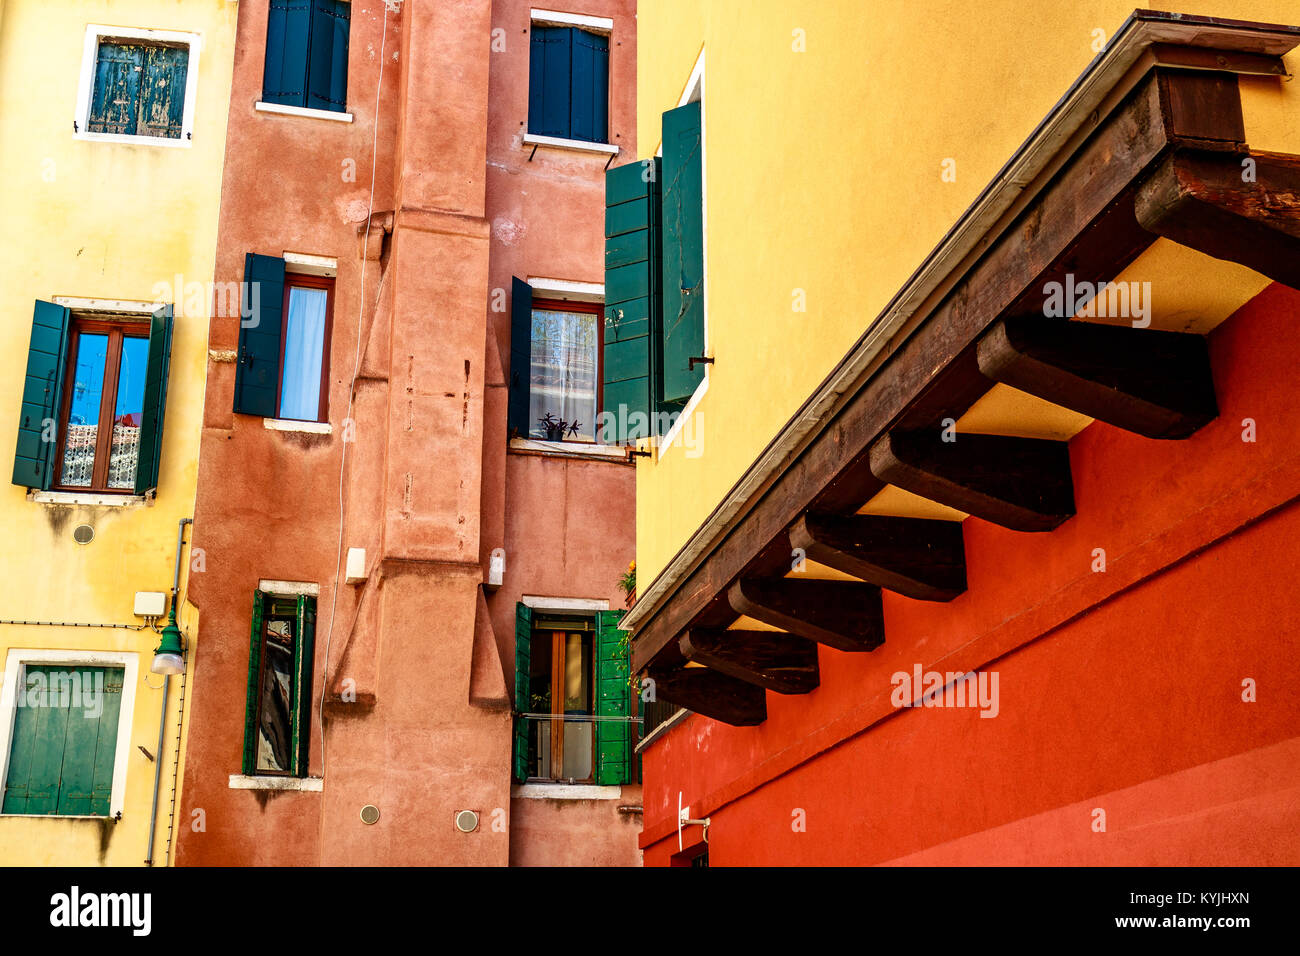 Bold colourful buildings in Venice, Italy. - Stock Image